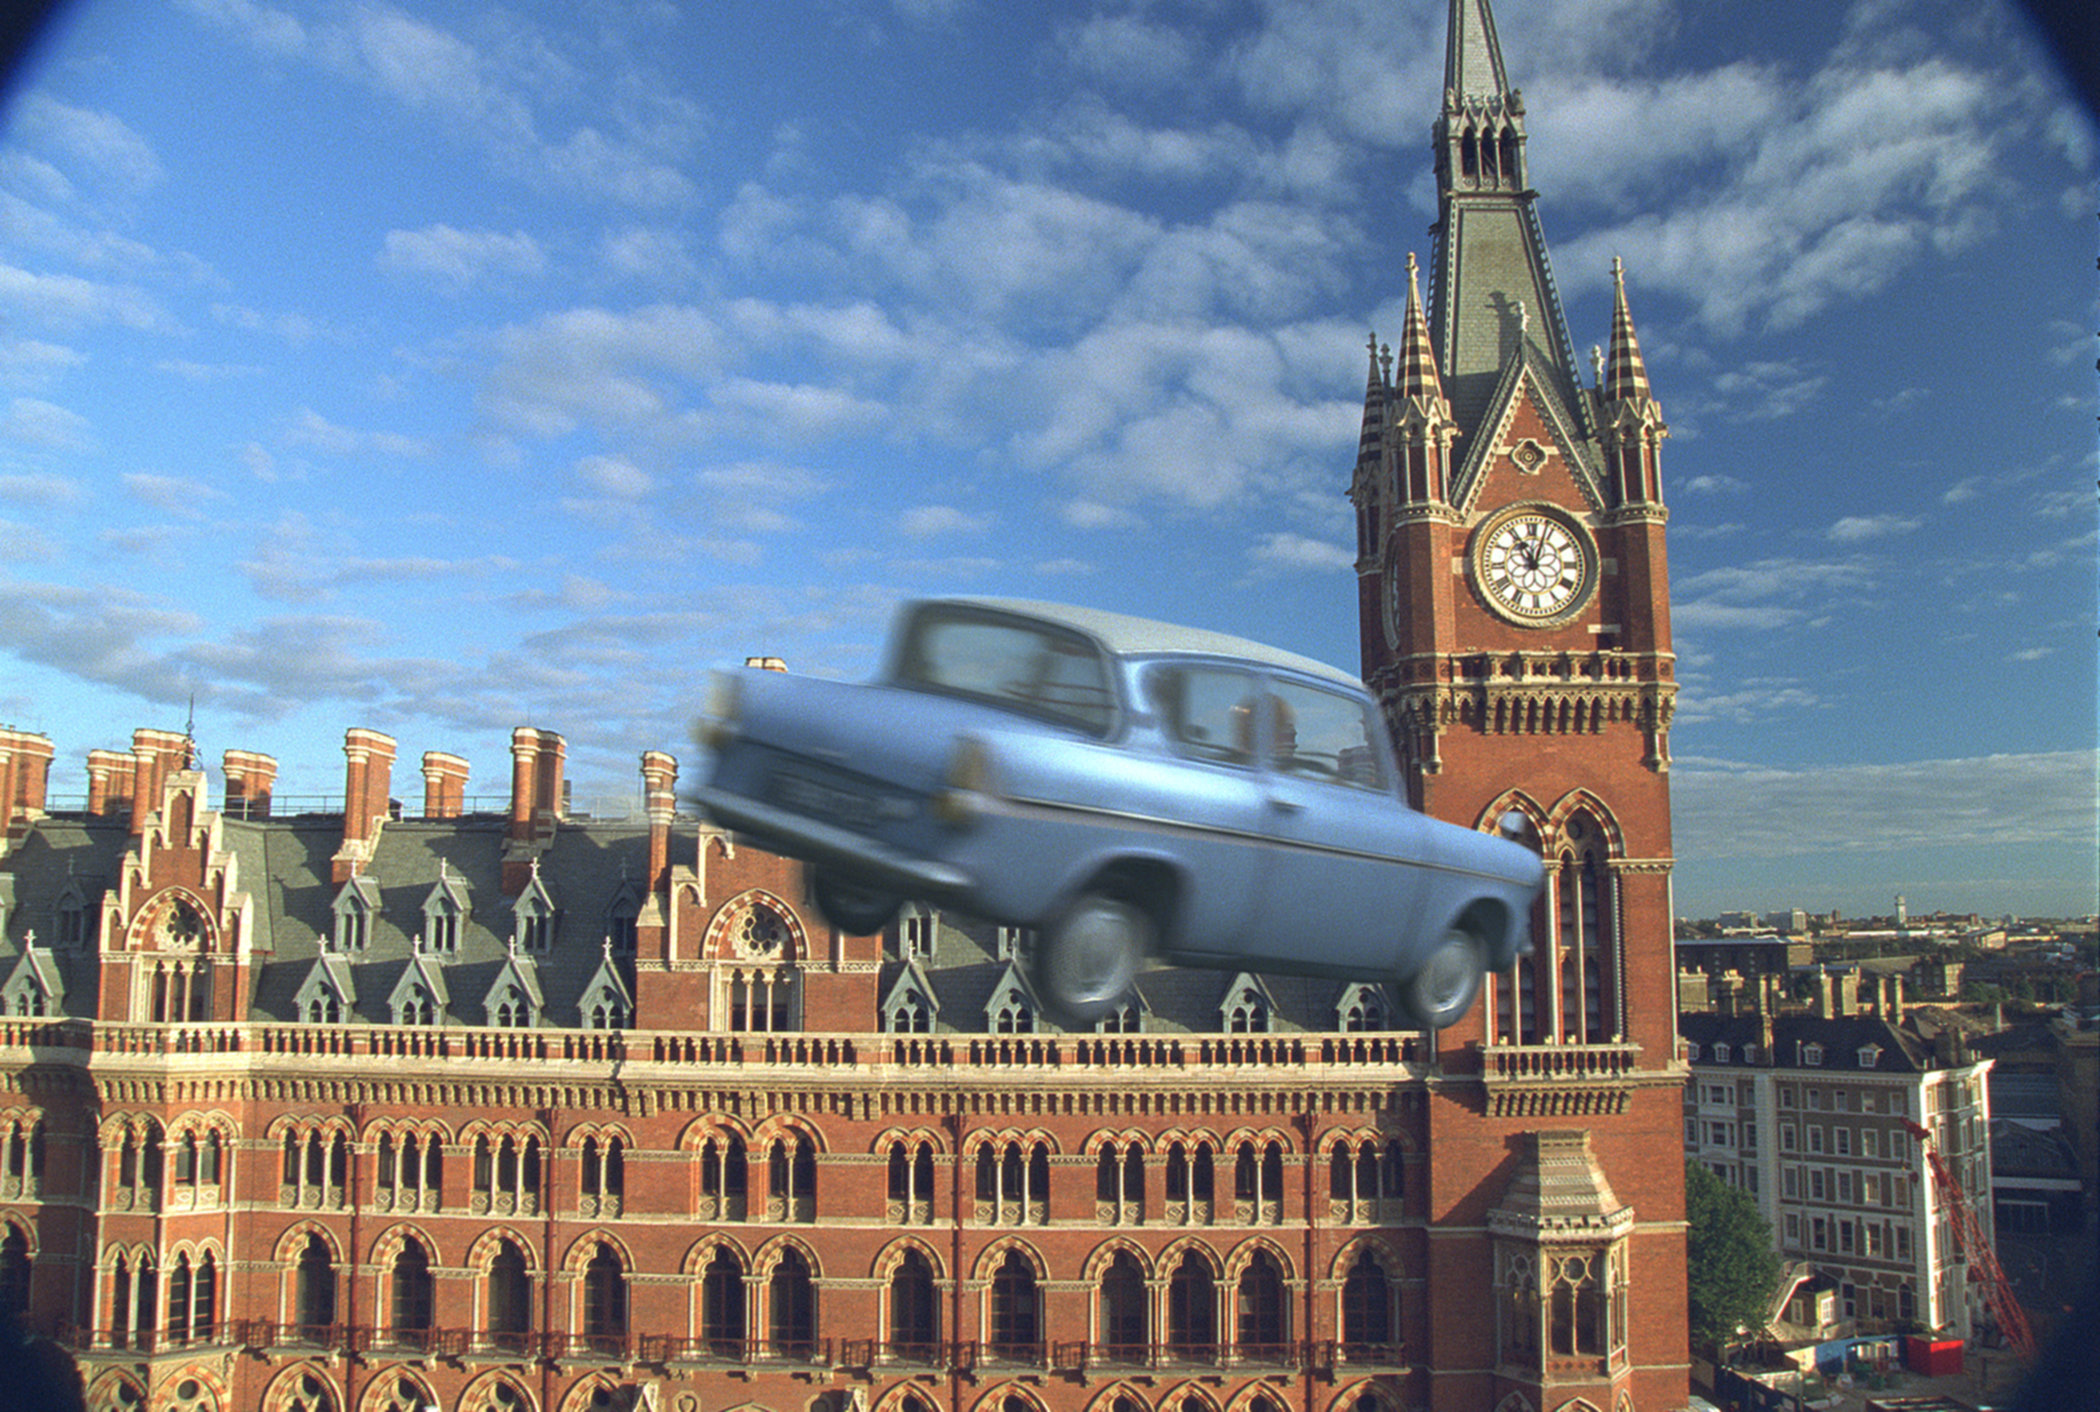 Ford Anglia leaving King's Cross station